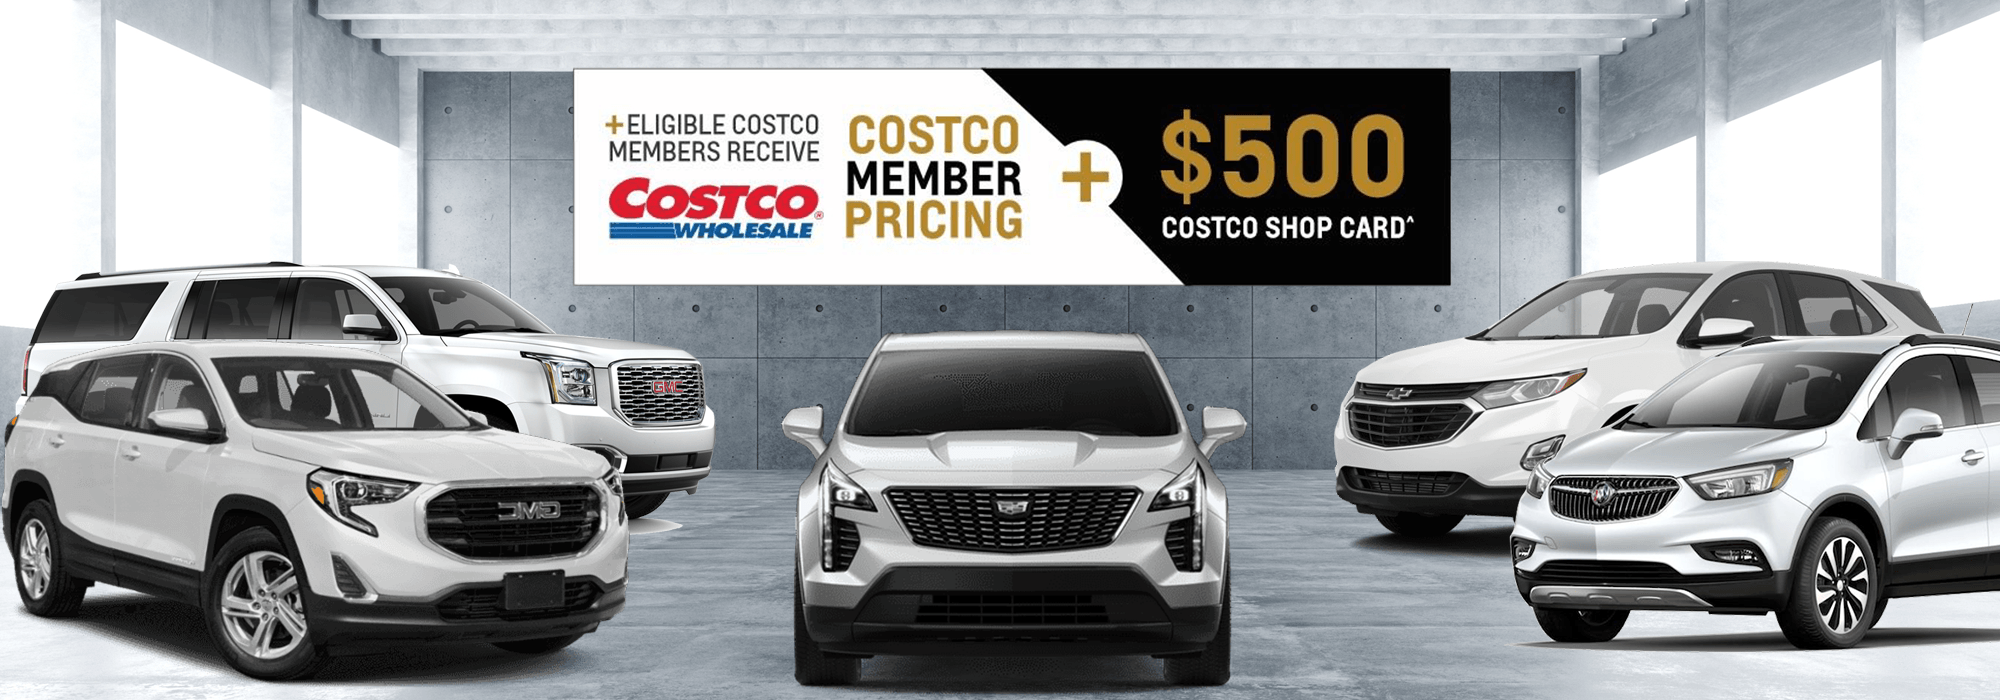 Costco Member Pricing @ Huron Motor Products